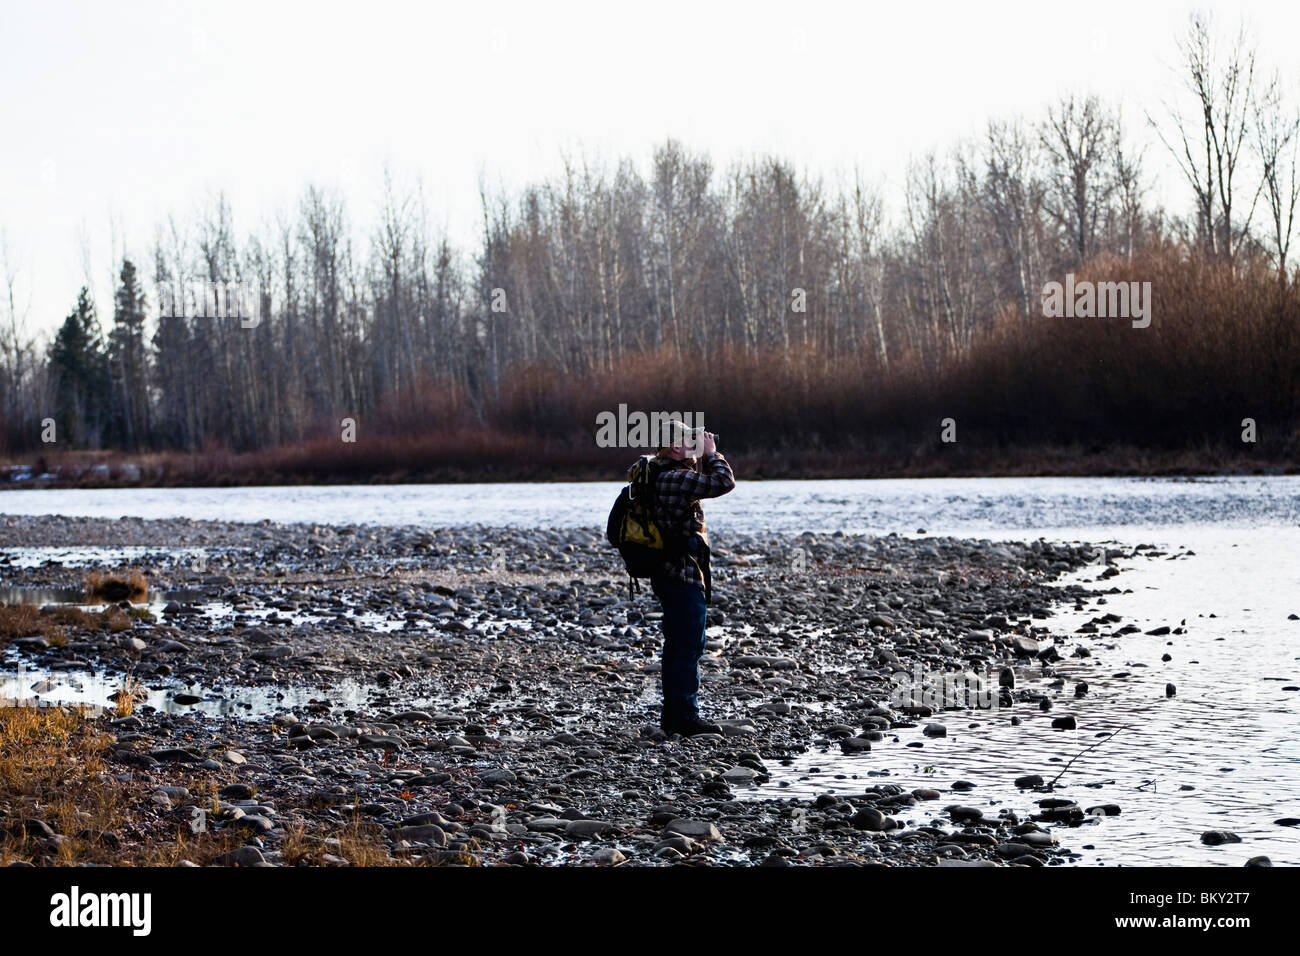 Young man in a camouflage hat wearing a backpack using binoculars at a rivers edge, Florence, Montana. - Stock Image